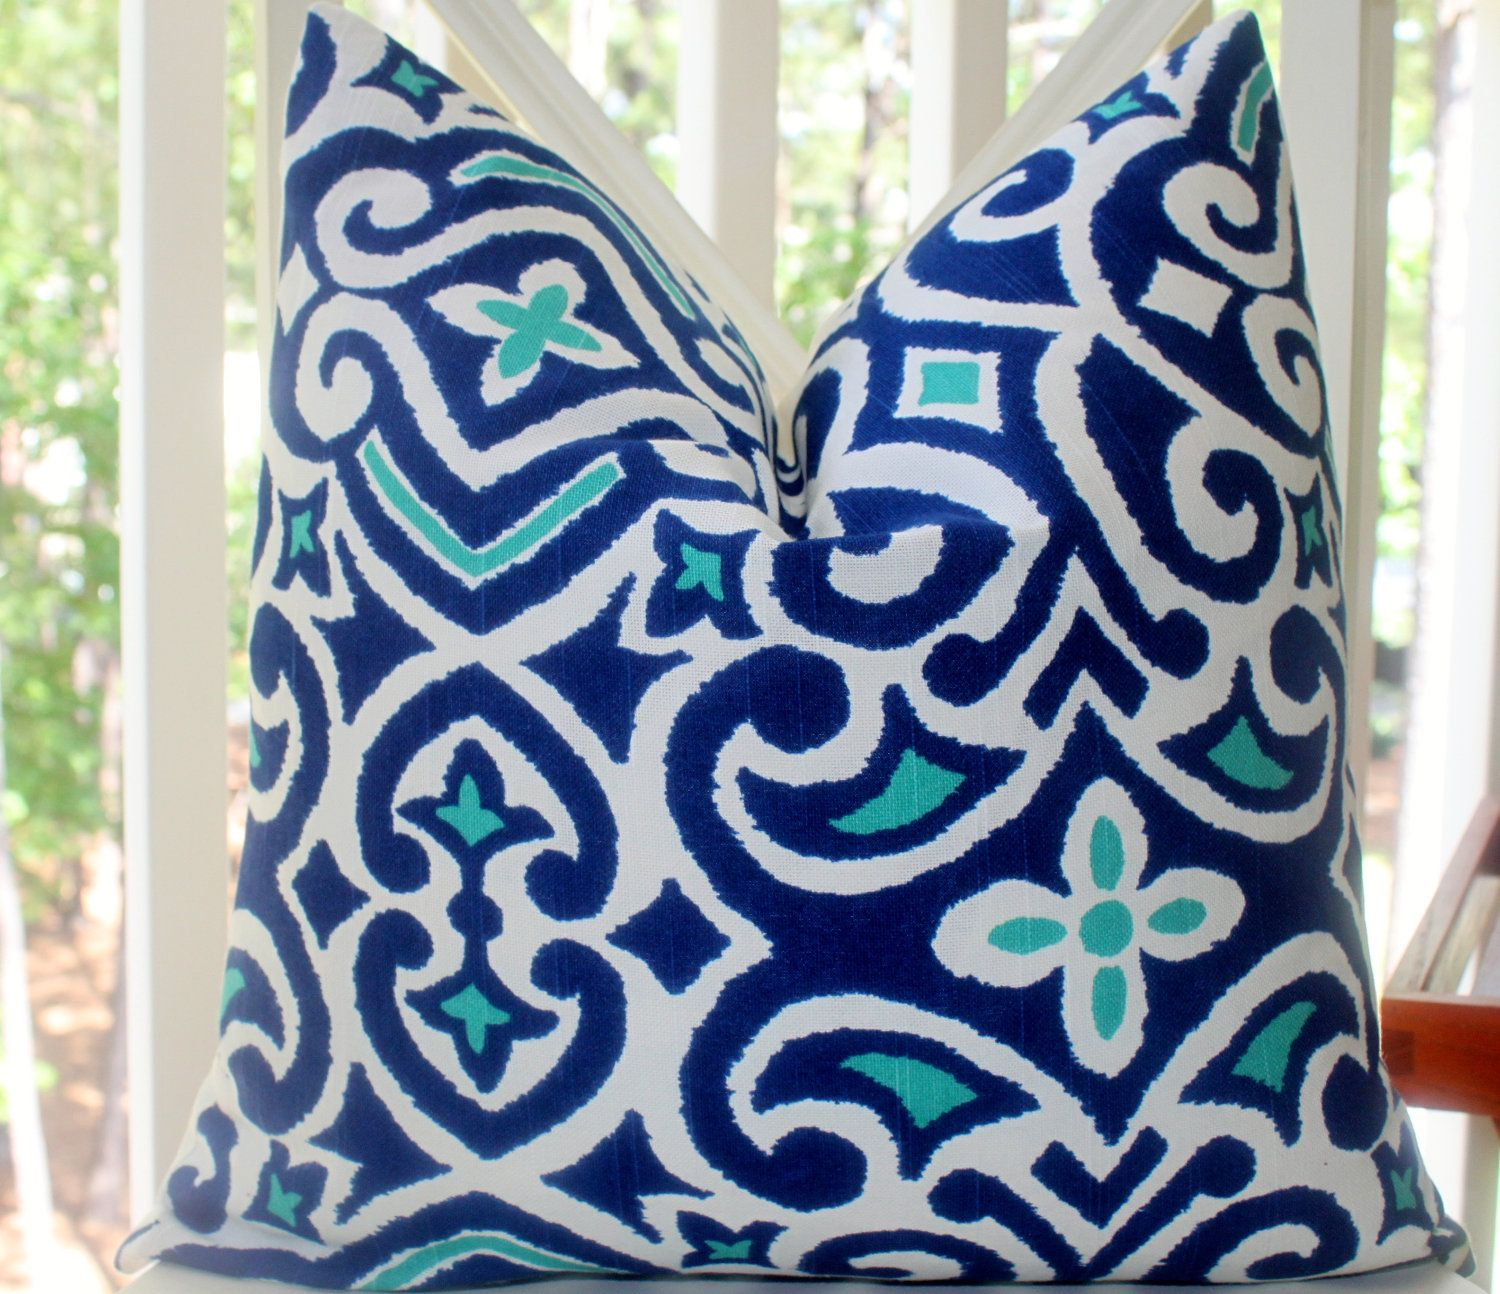 Blue And Teal Pillows Part - 22: Decorative Pillow Cover - 18x18 Royal Blue White And Teal Aqua Geometric  Scroll Pillow Cover-